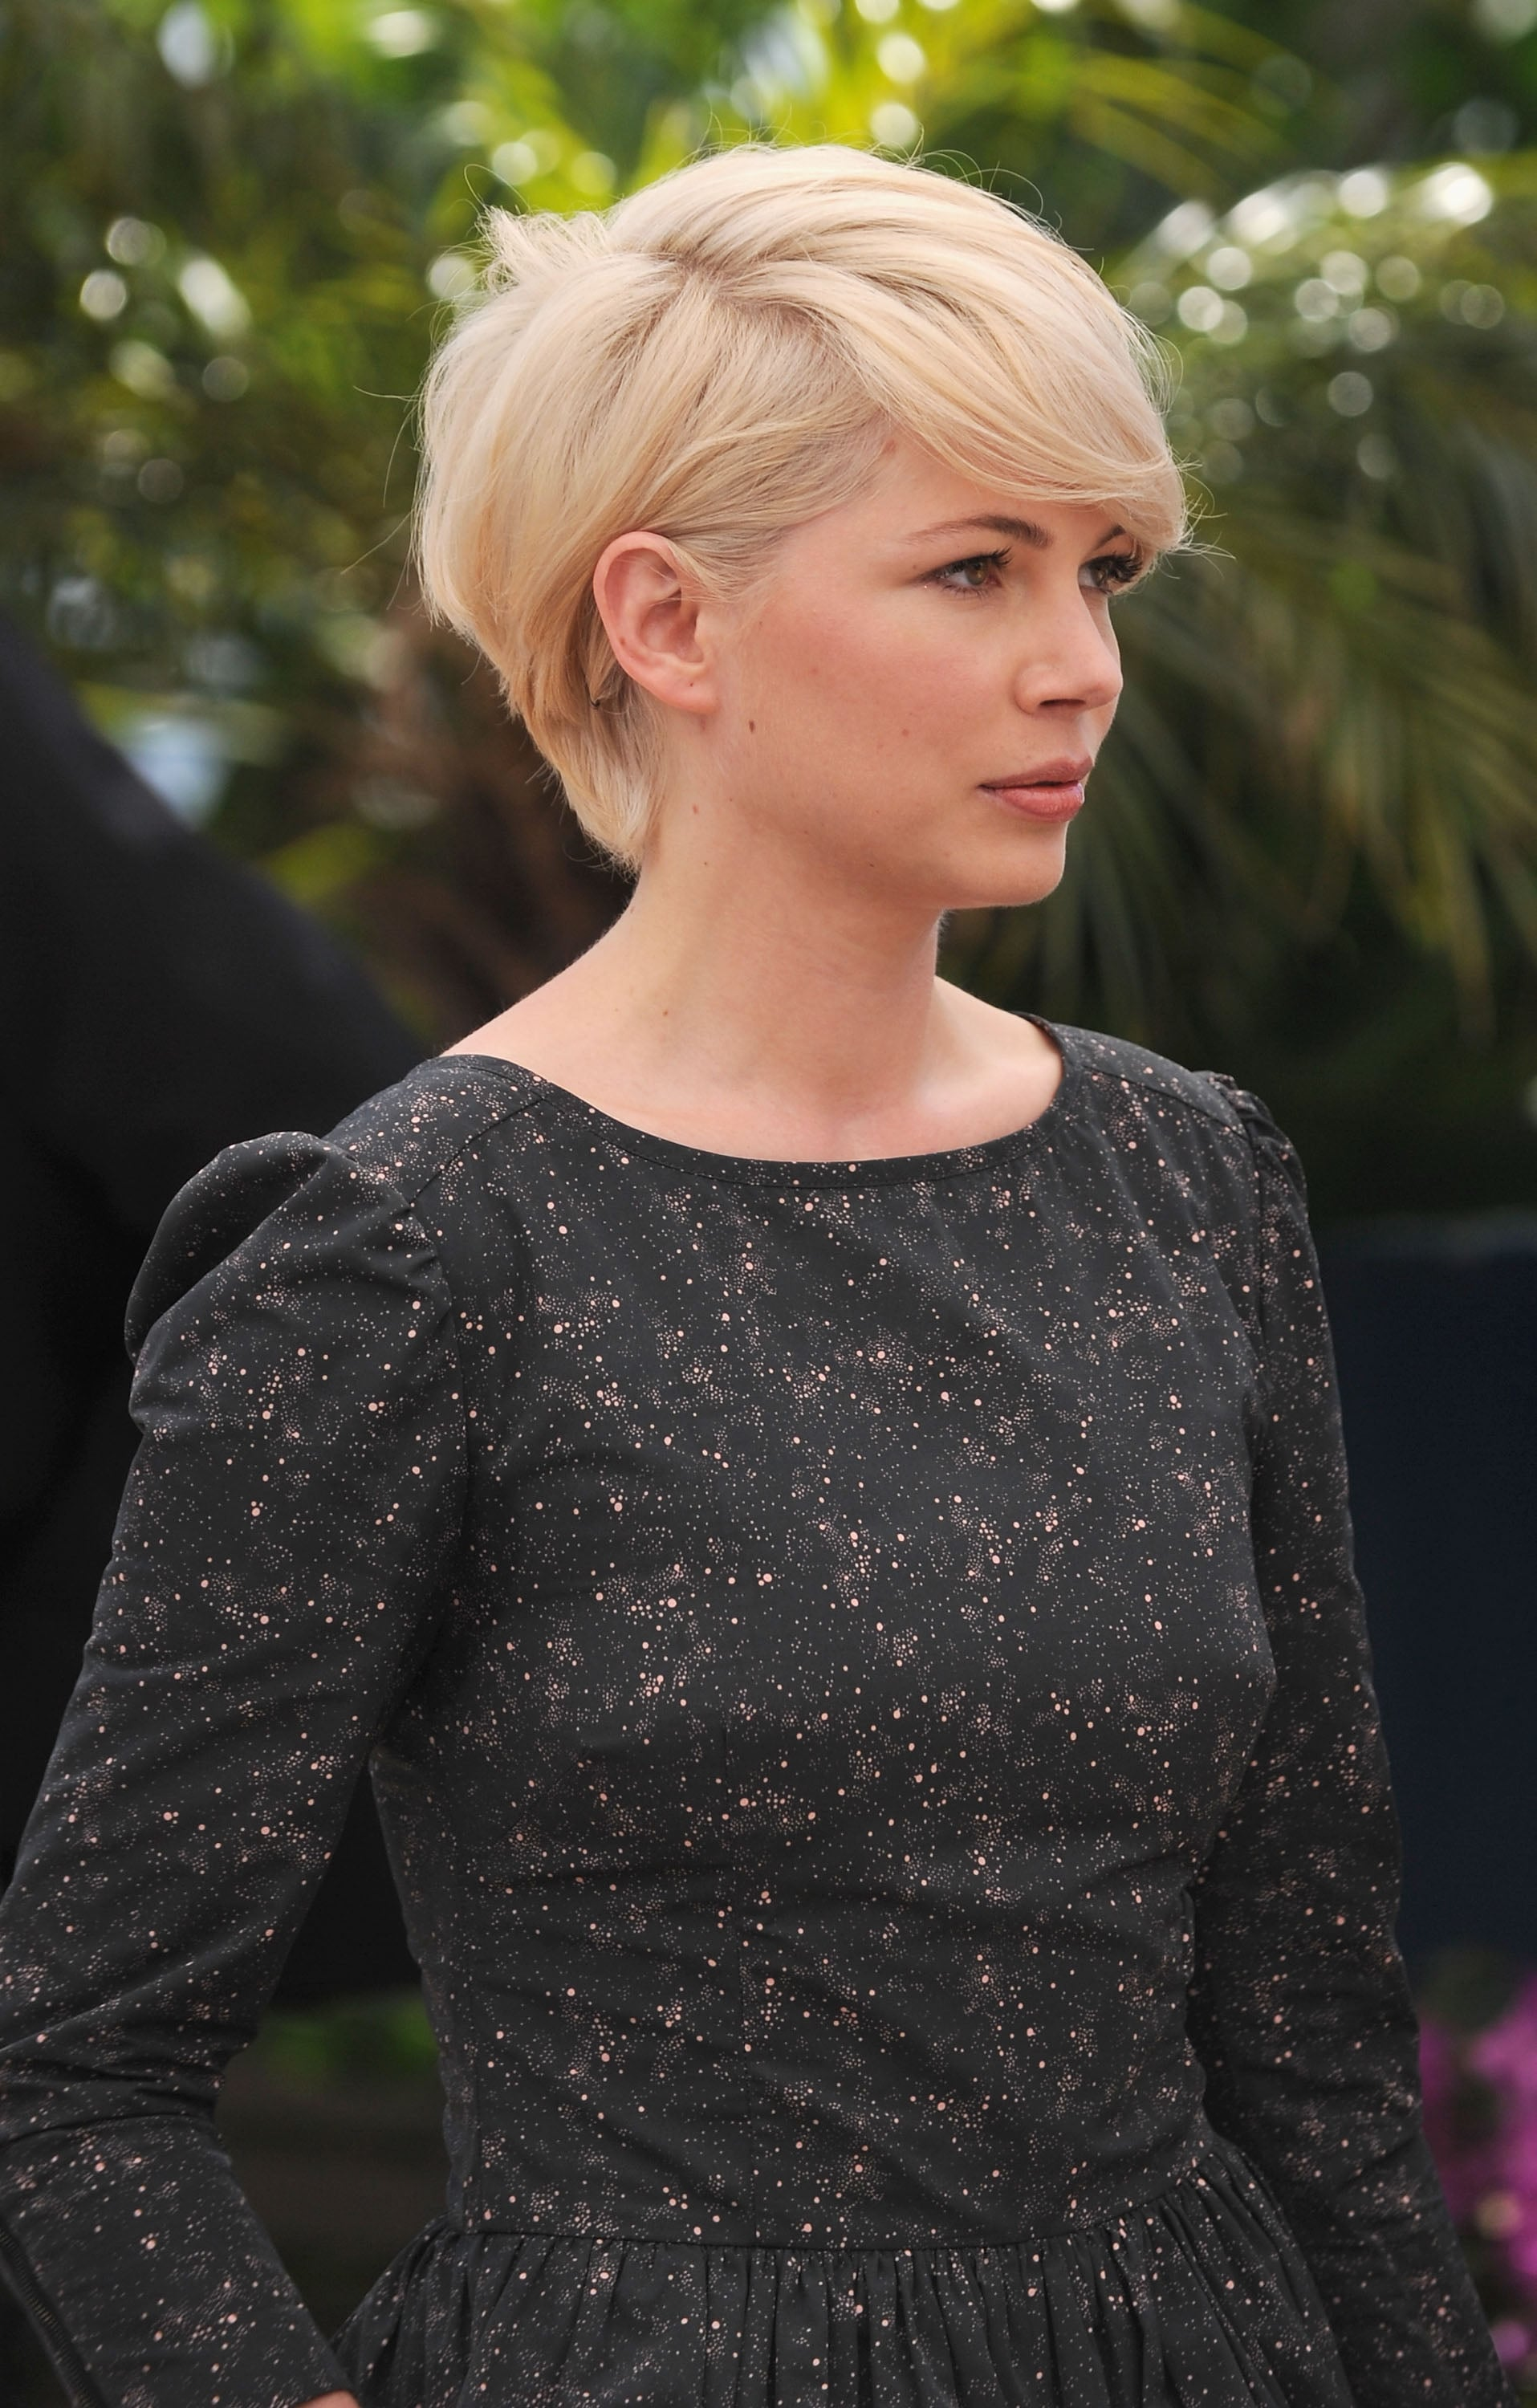 Pictures of Ryan Gosling and Michelle Williams at Cannes ...